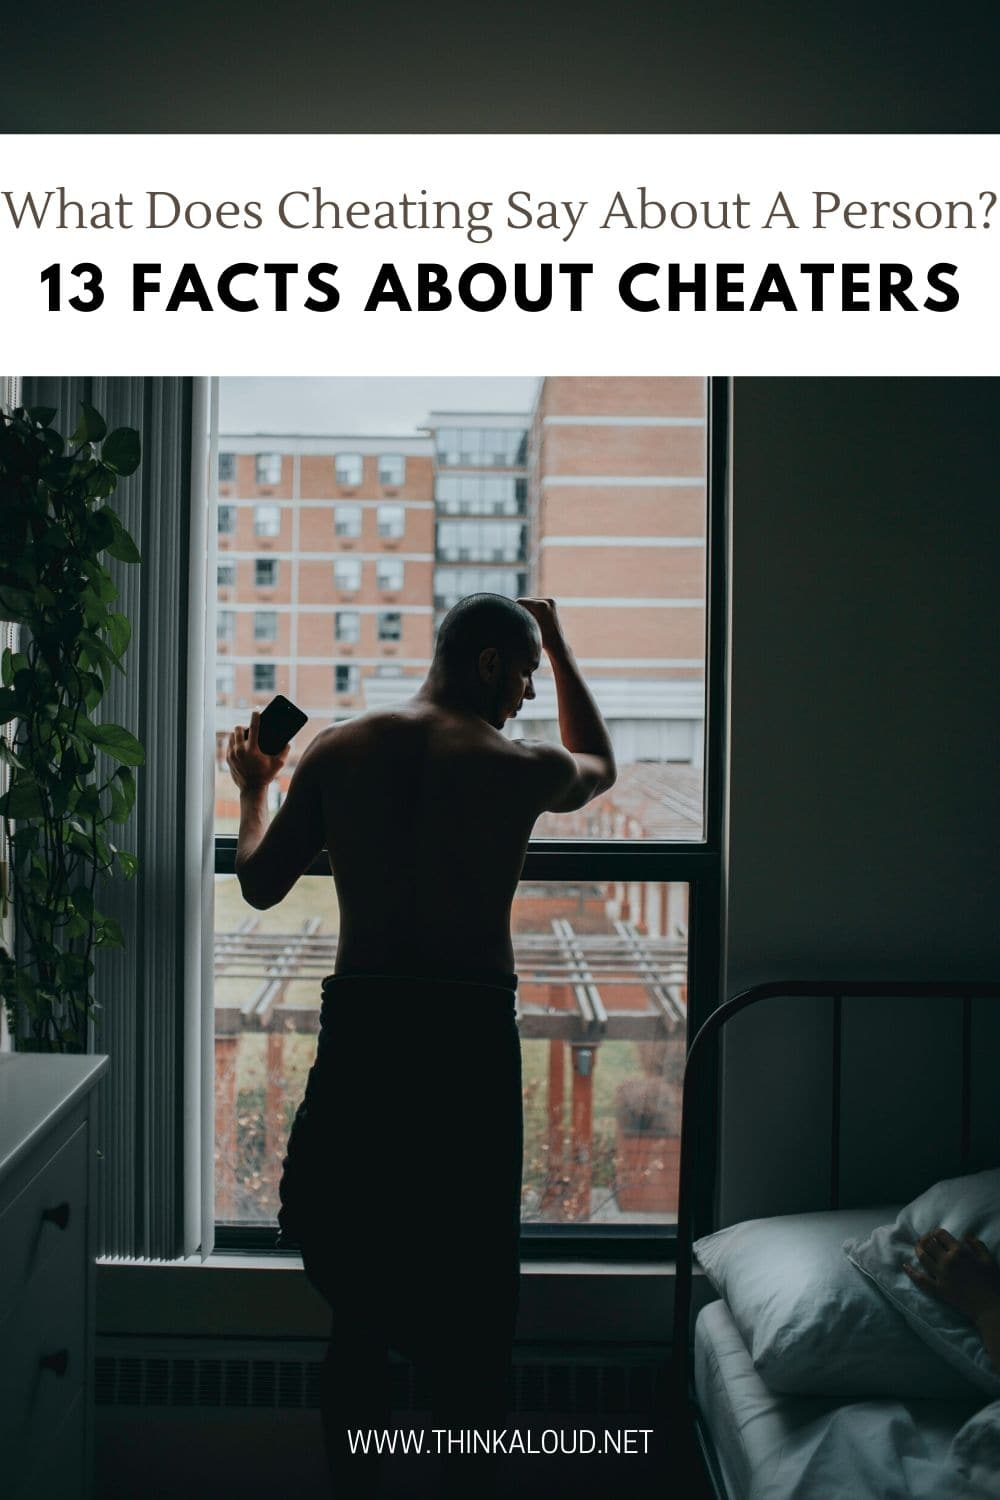 What Does Cheating Say About A Person? 13 Facts About Cheaters